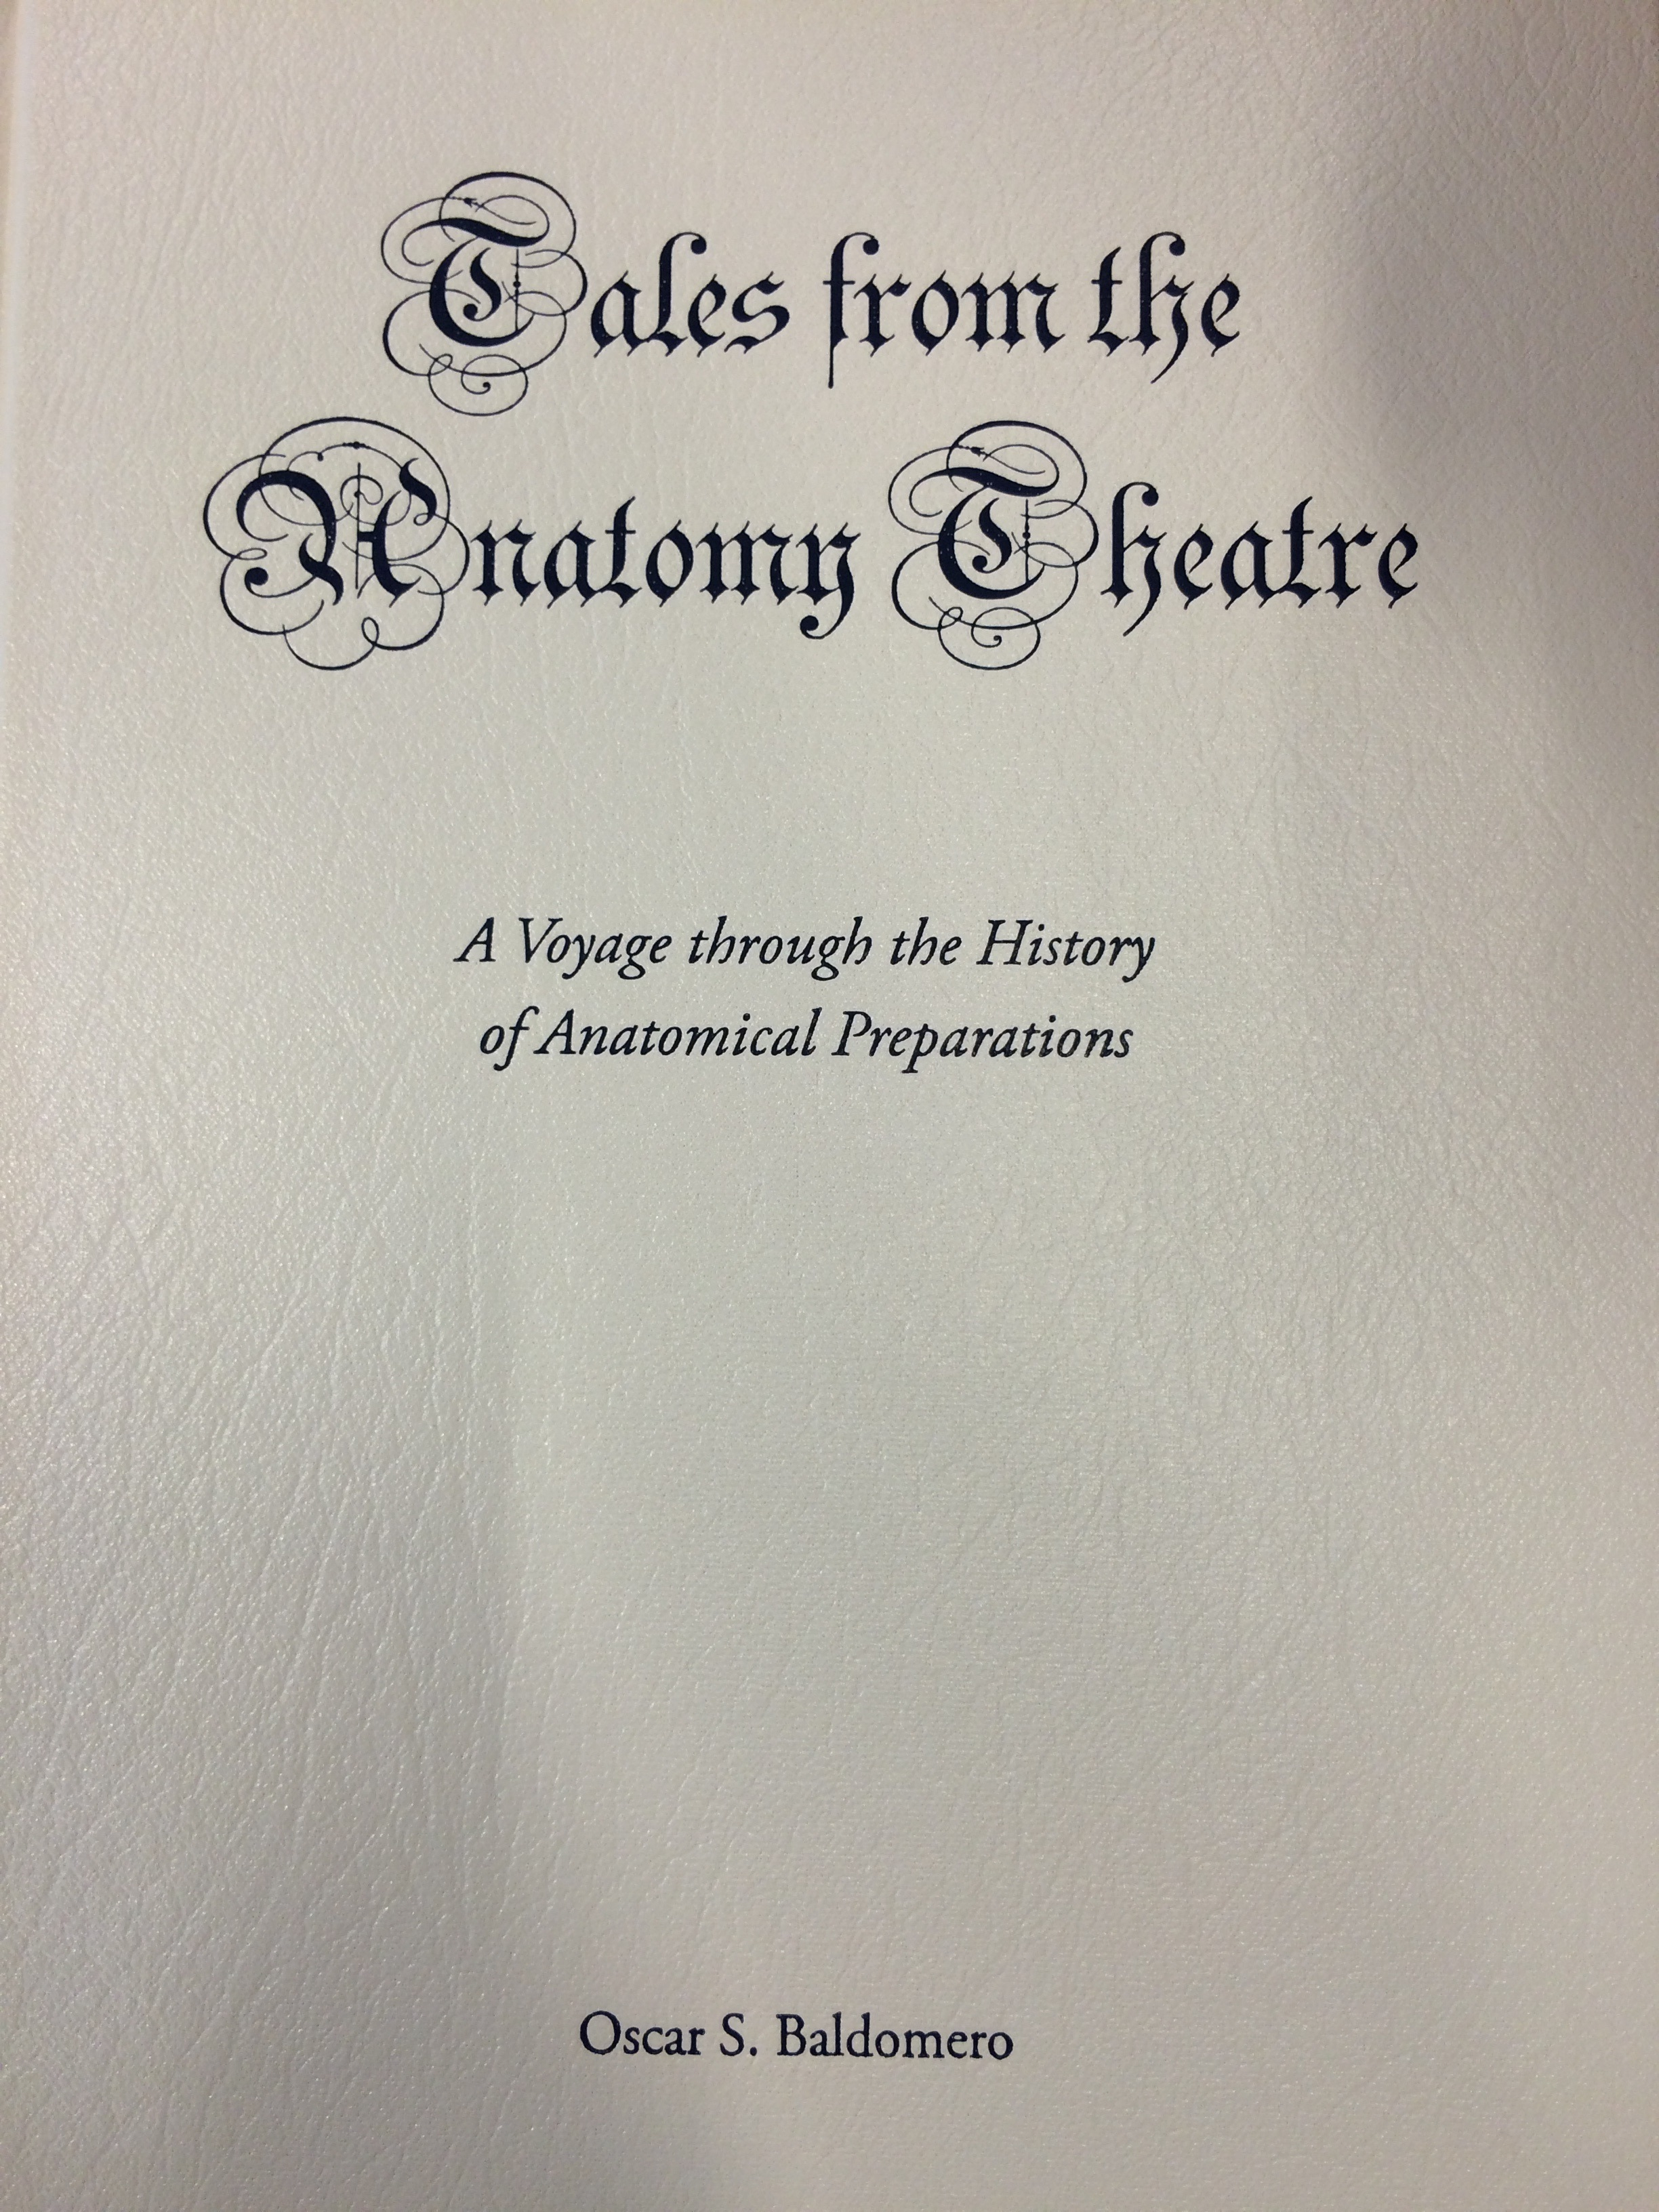 Tales from the Anatomy Theatre: A Voyage through the History of Anatomical Preparations Oscar S. Baldomero